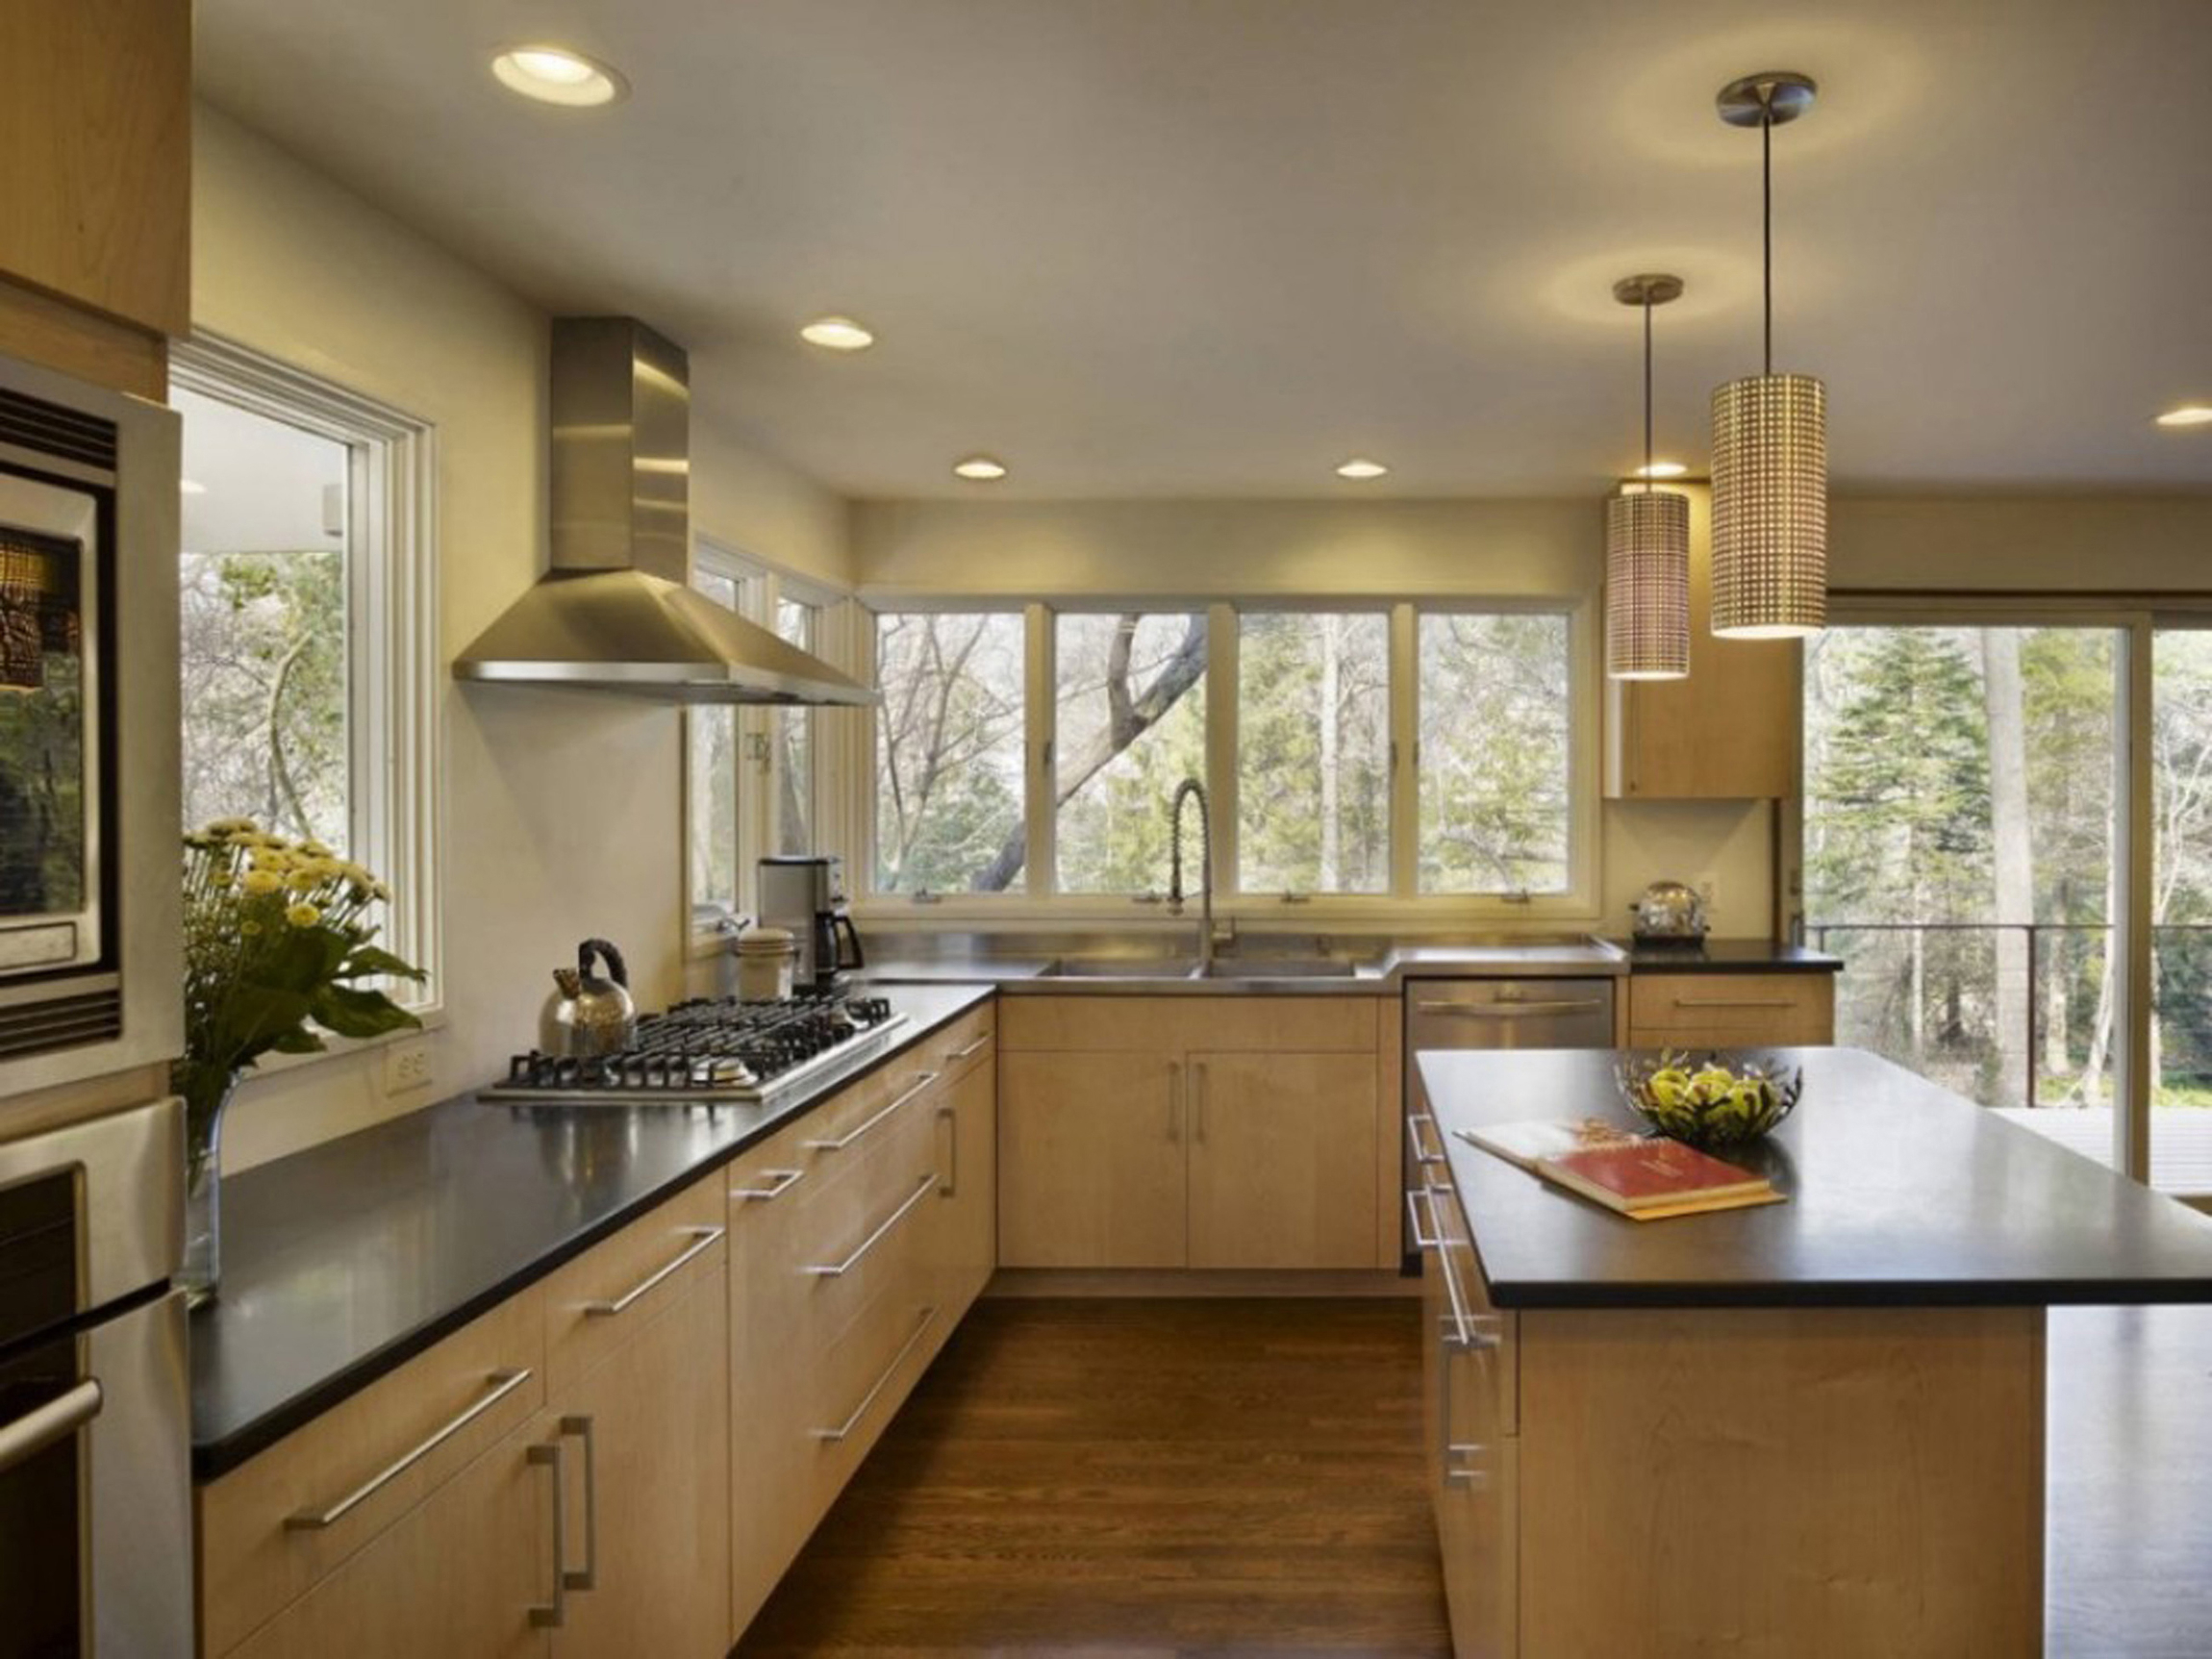 Kitchen Concept By Metcalfe Architecture Design (View 20 of 31)